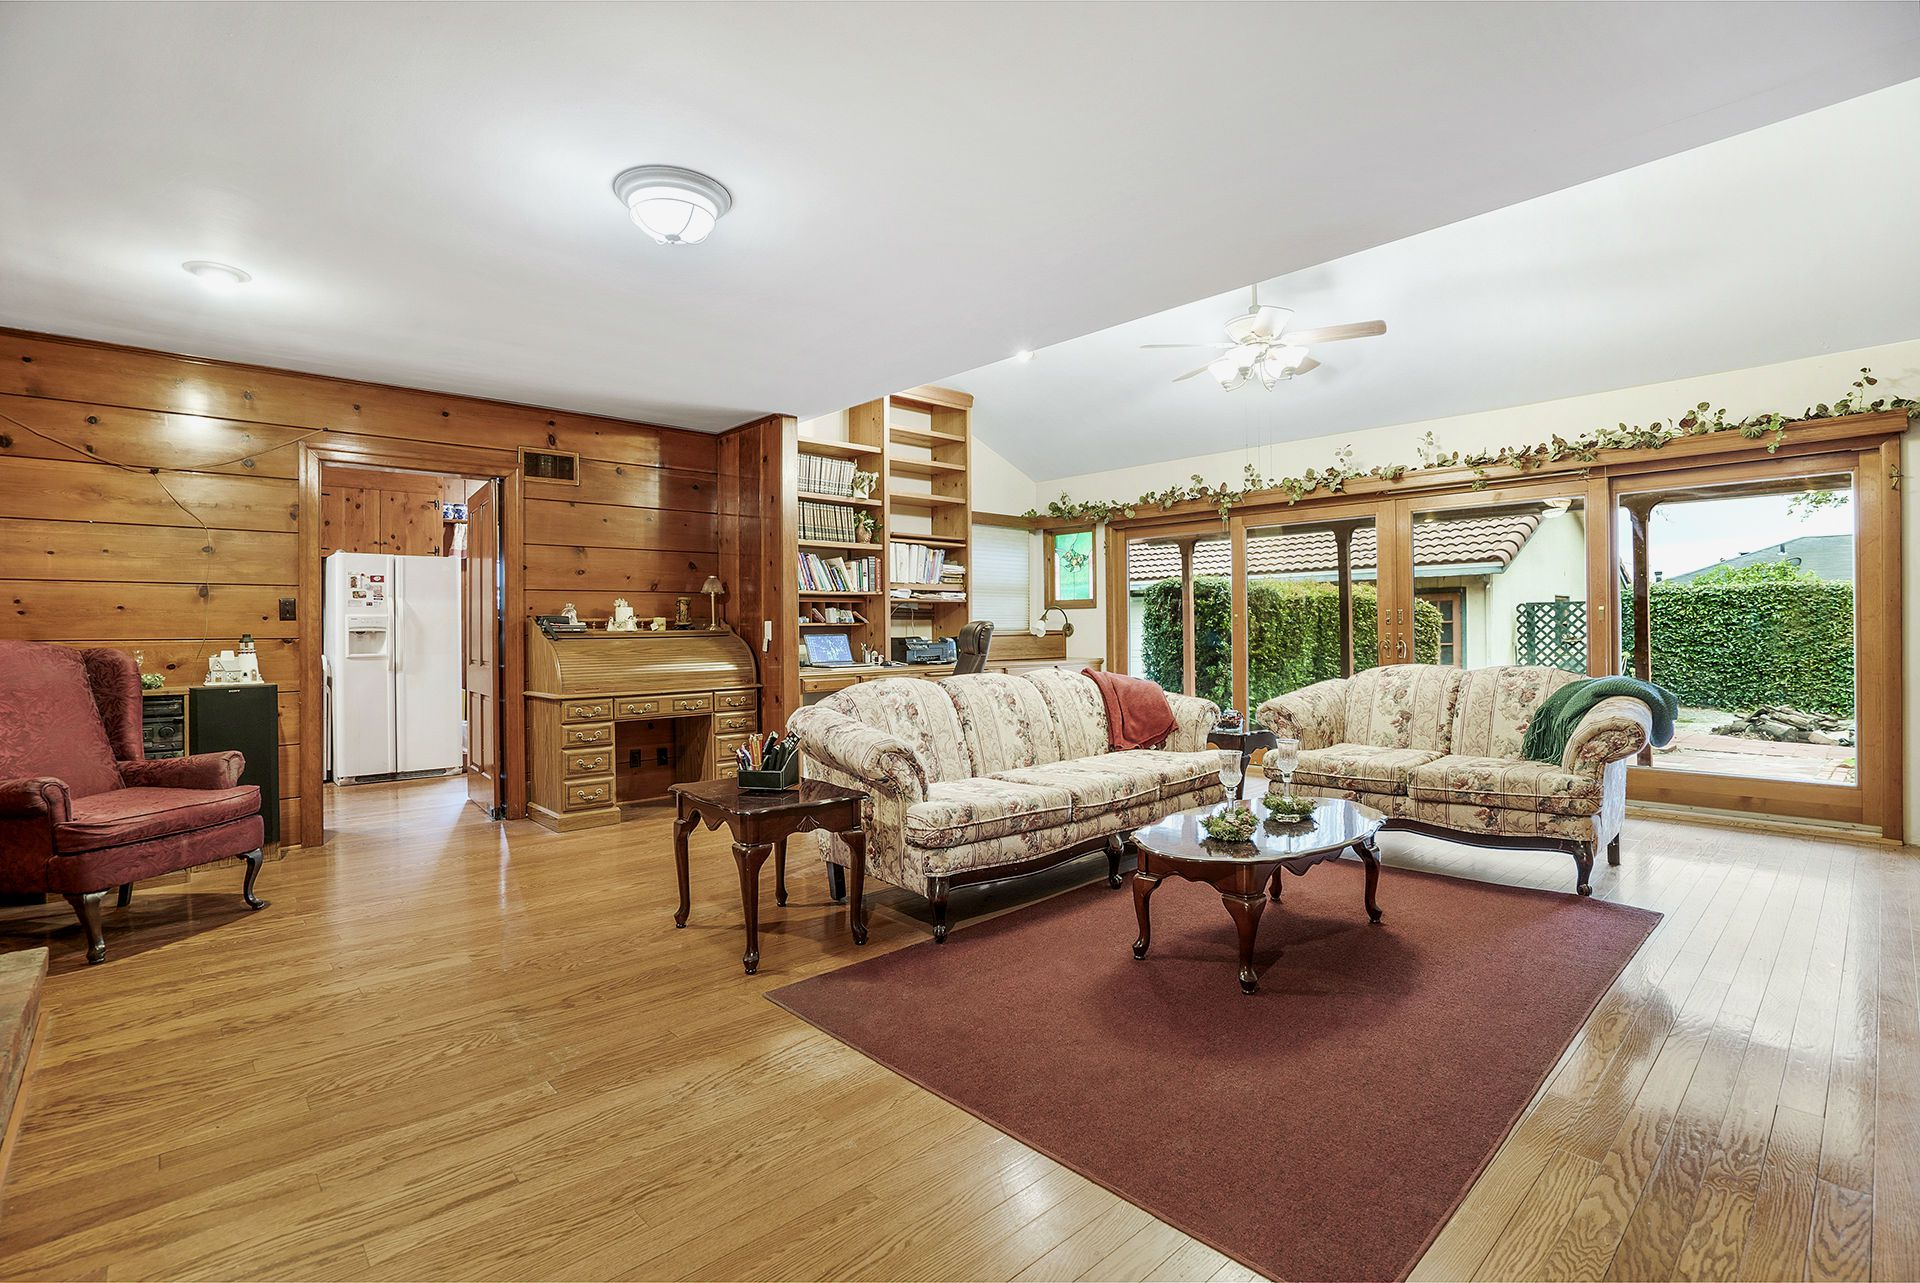 Gigantic family room with media niche, lots of bookshelves, built-in desk, floor to ceiling windows and slider overlooking the backyard, and a cozy fireplace.